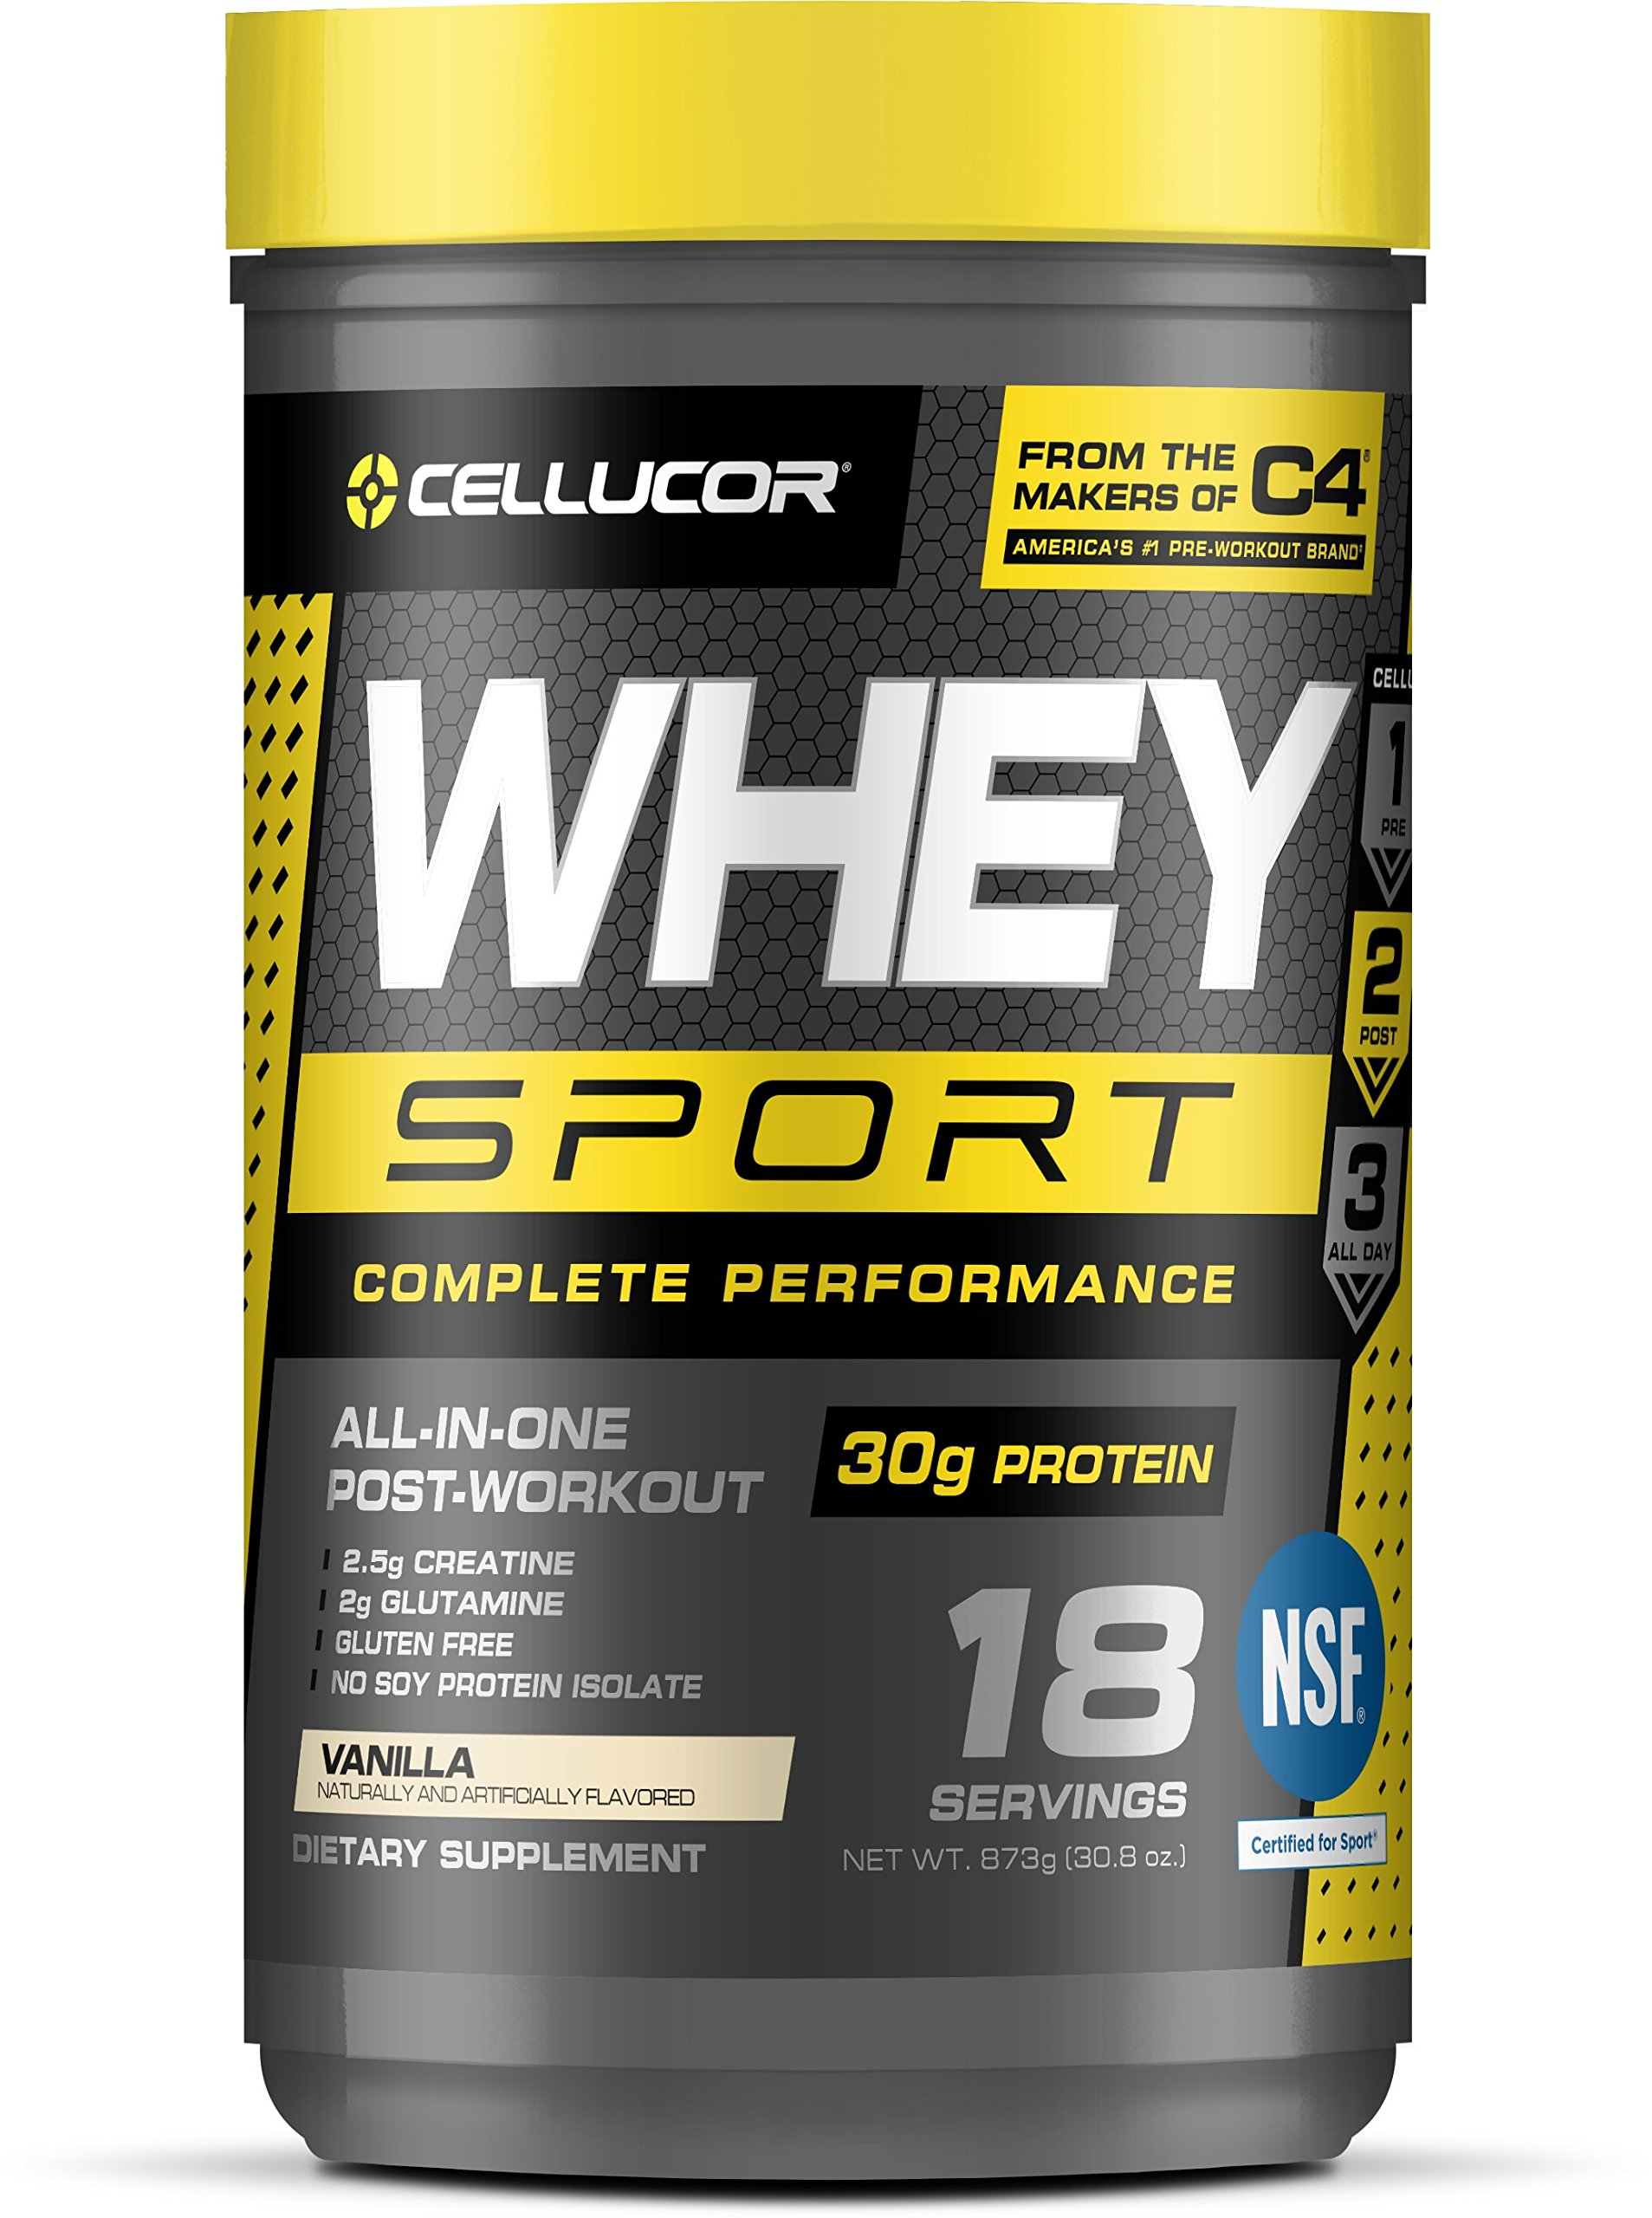 Cellucor Whey Sport Protein Powder, Post Workout Recovery Drink with Whey Portein Isolate, Creatine & Glutamine, Vanilla, 18 Servings